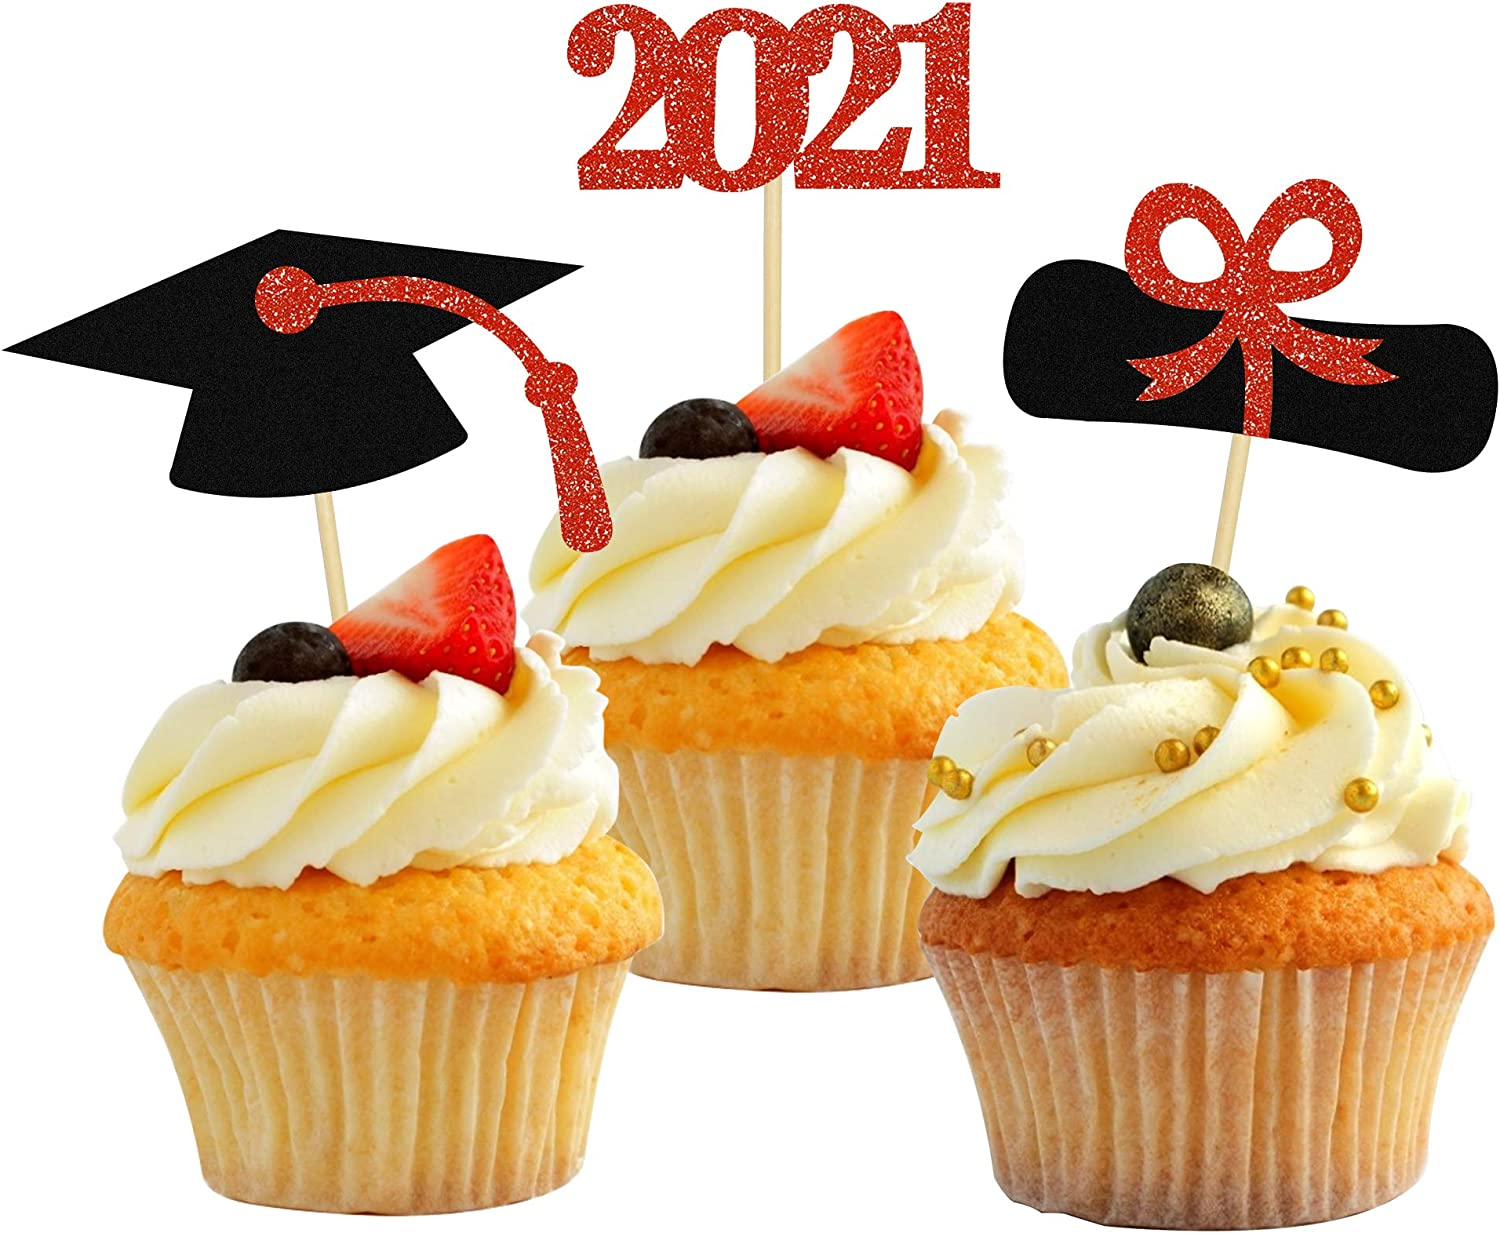 2021 Glitter Graduation Cupcake Topper, 48 PCS Red Cake Decorations 2021 Diploma Grad Cap Cake Toppers Food Picks for Graduation Party Supplies